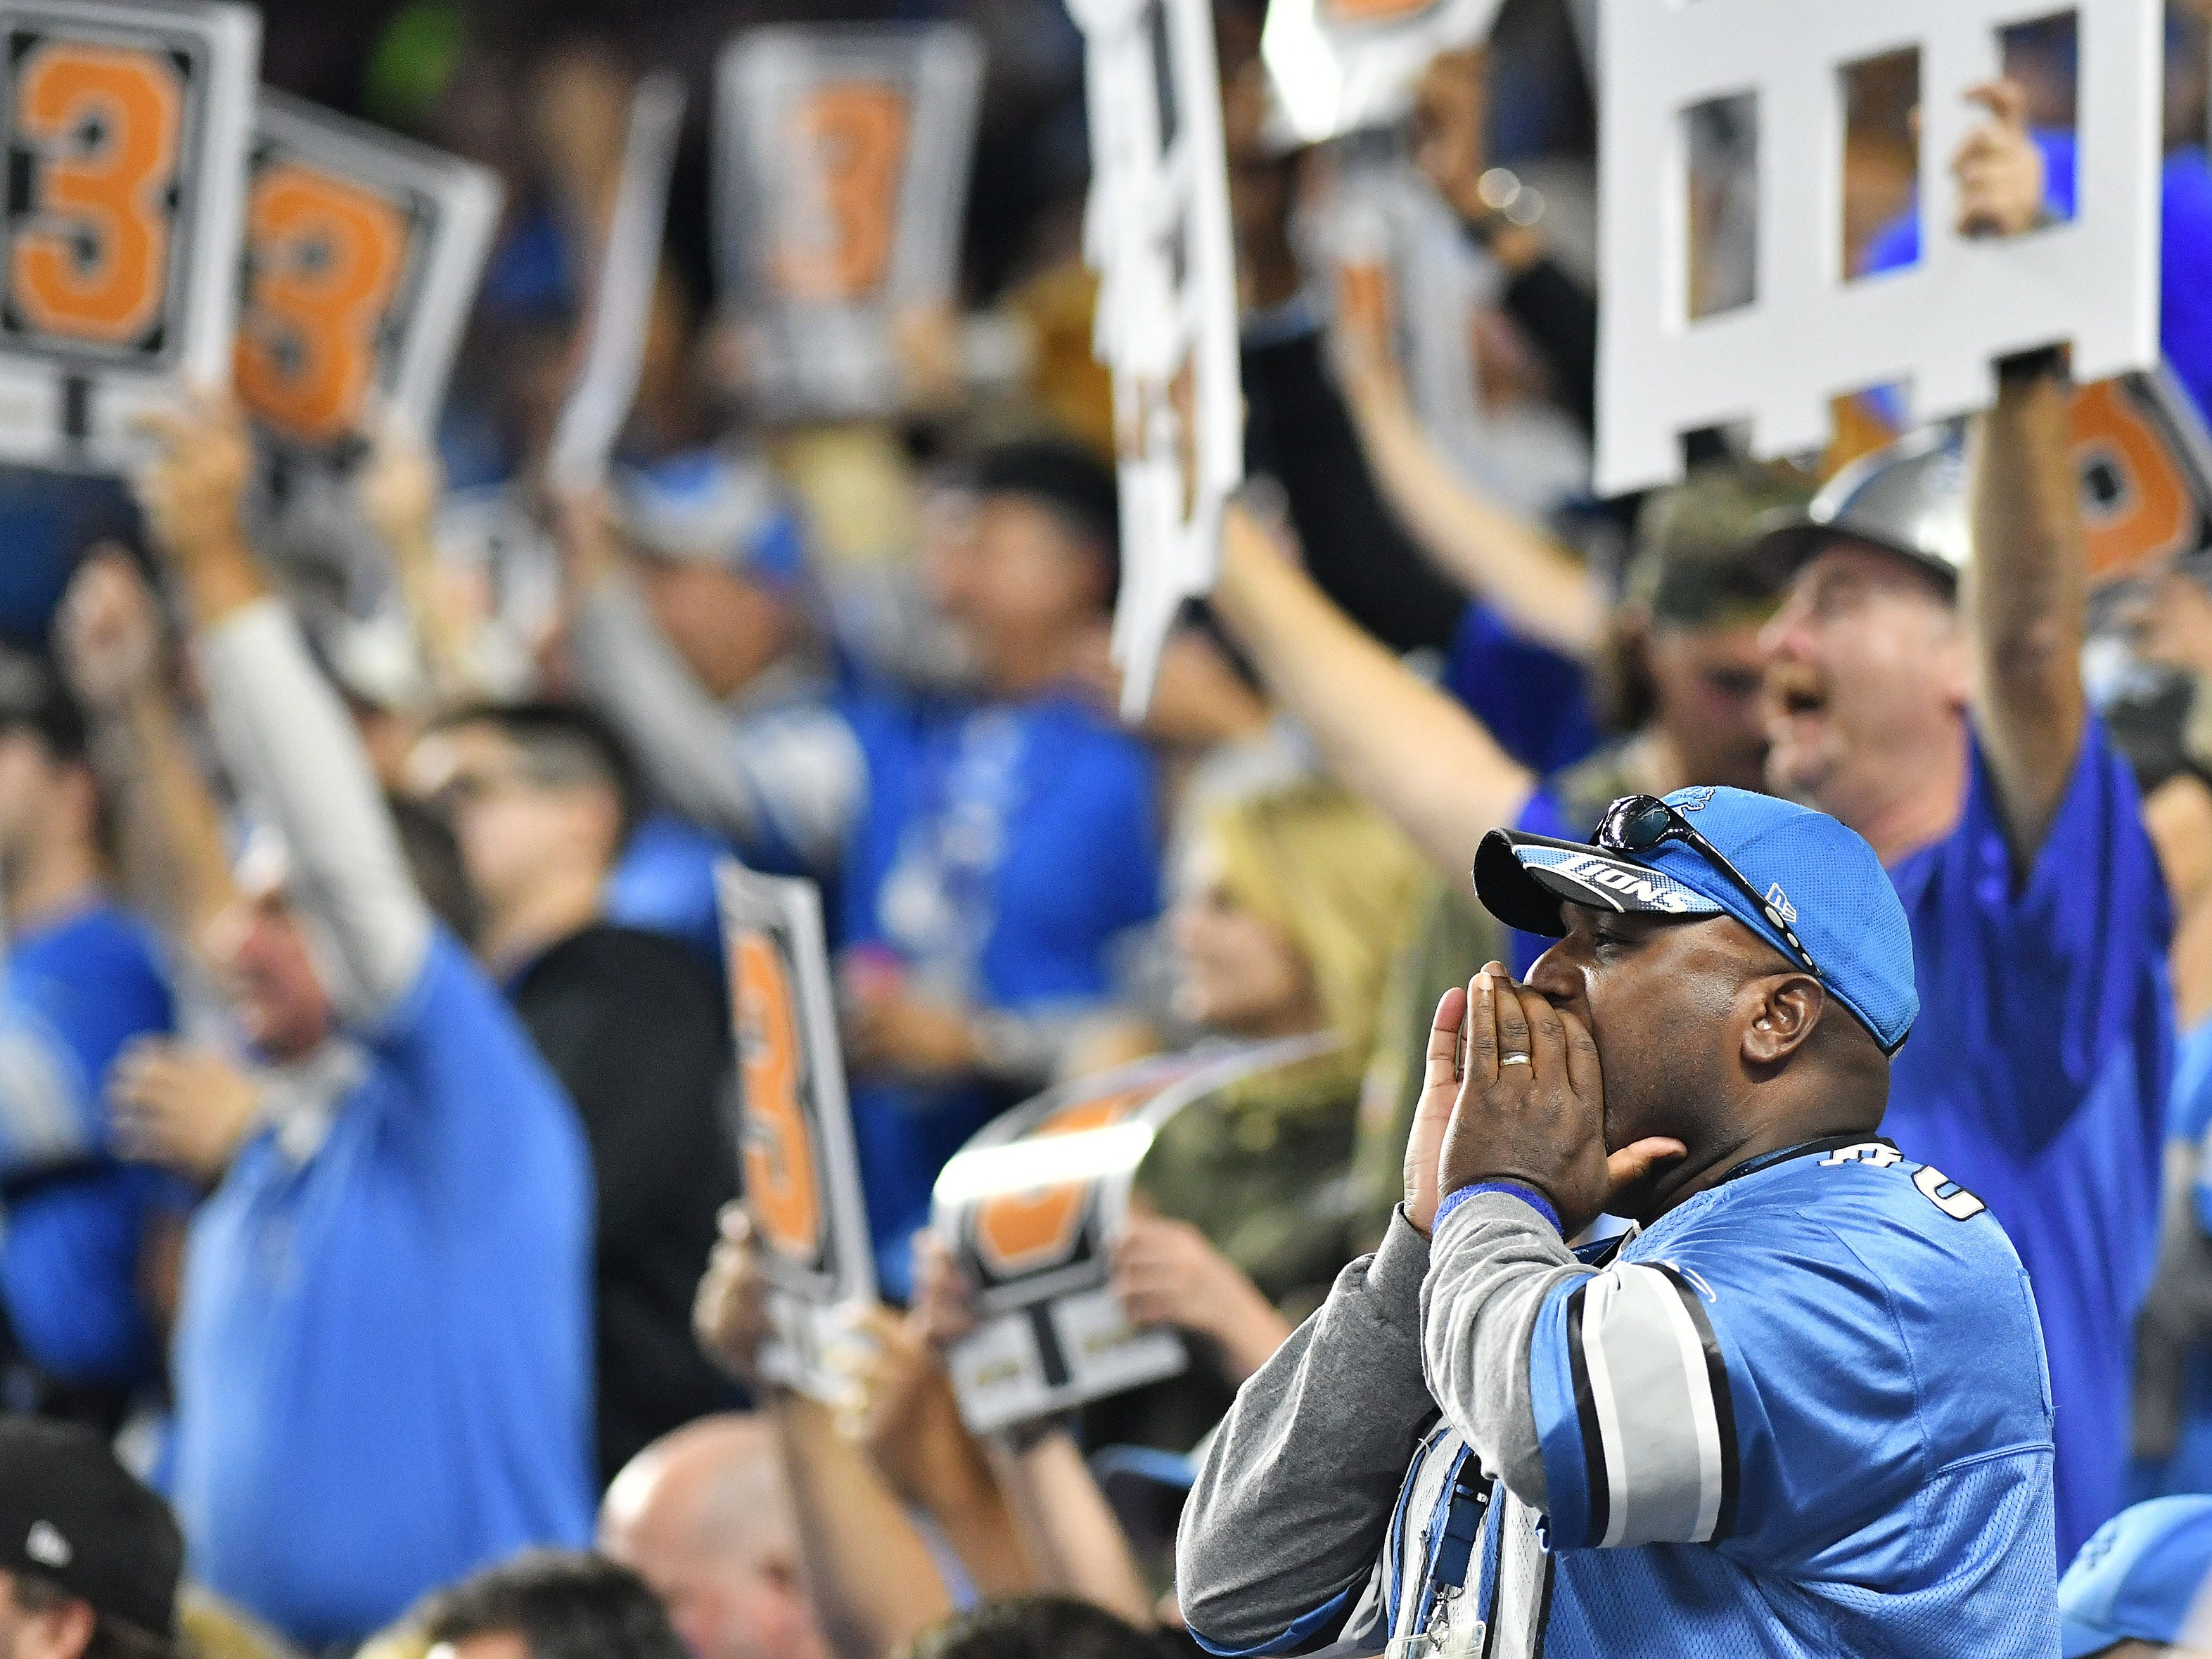 Lions fans make some noise on a Jets' third down in the first quarter.